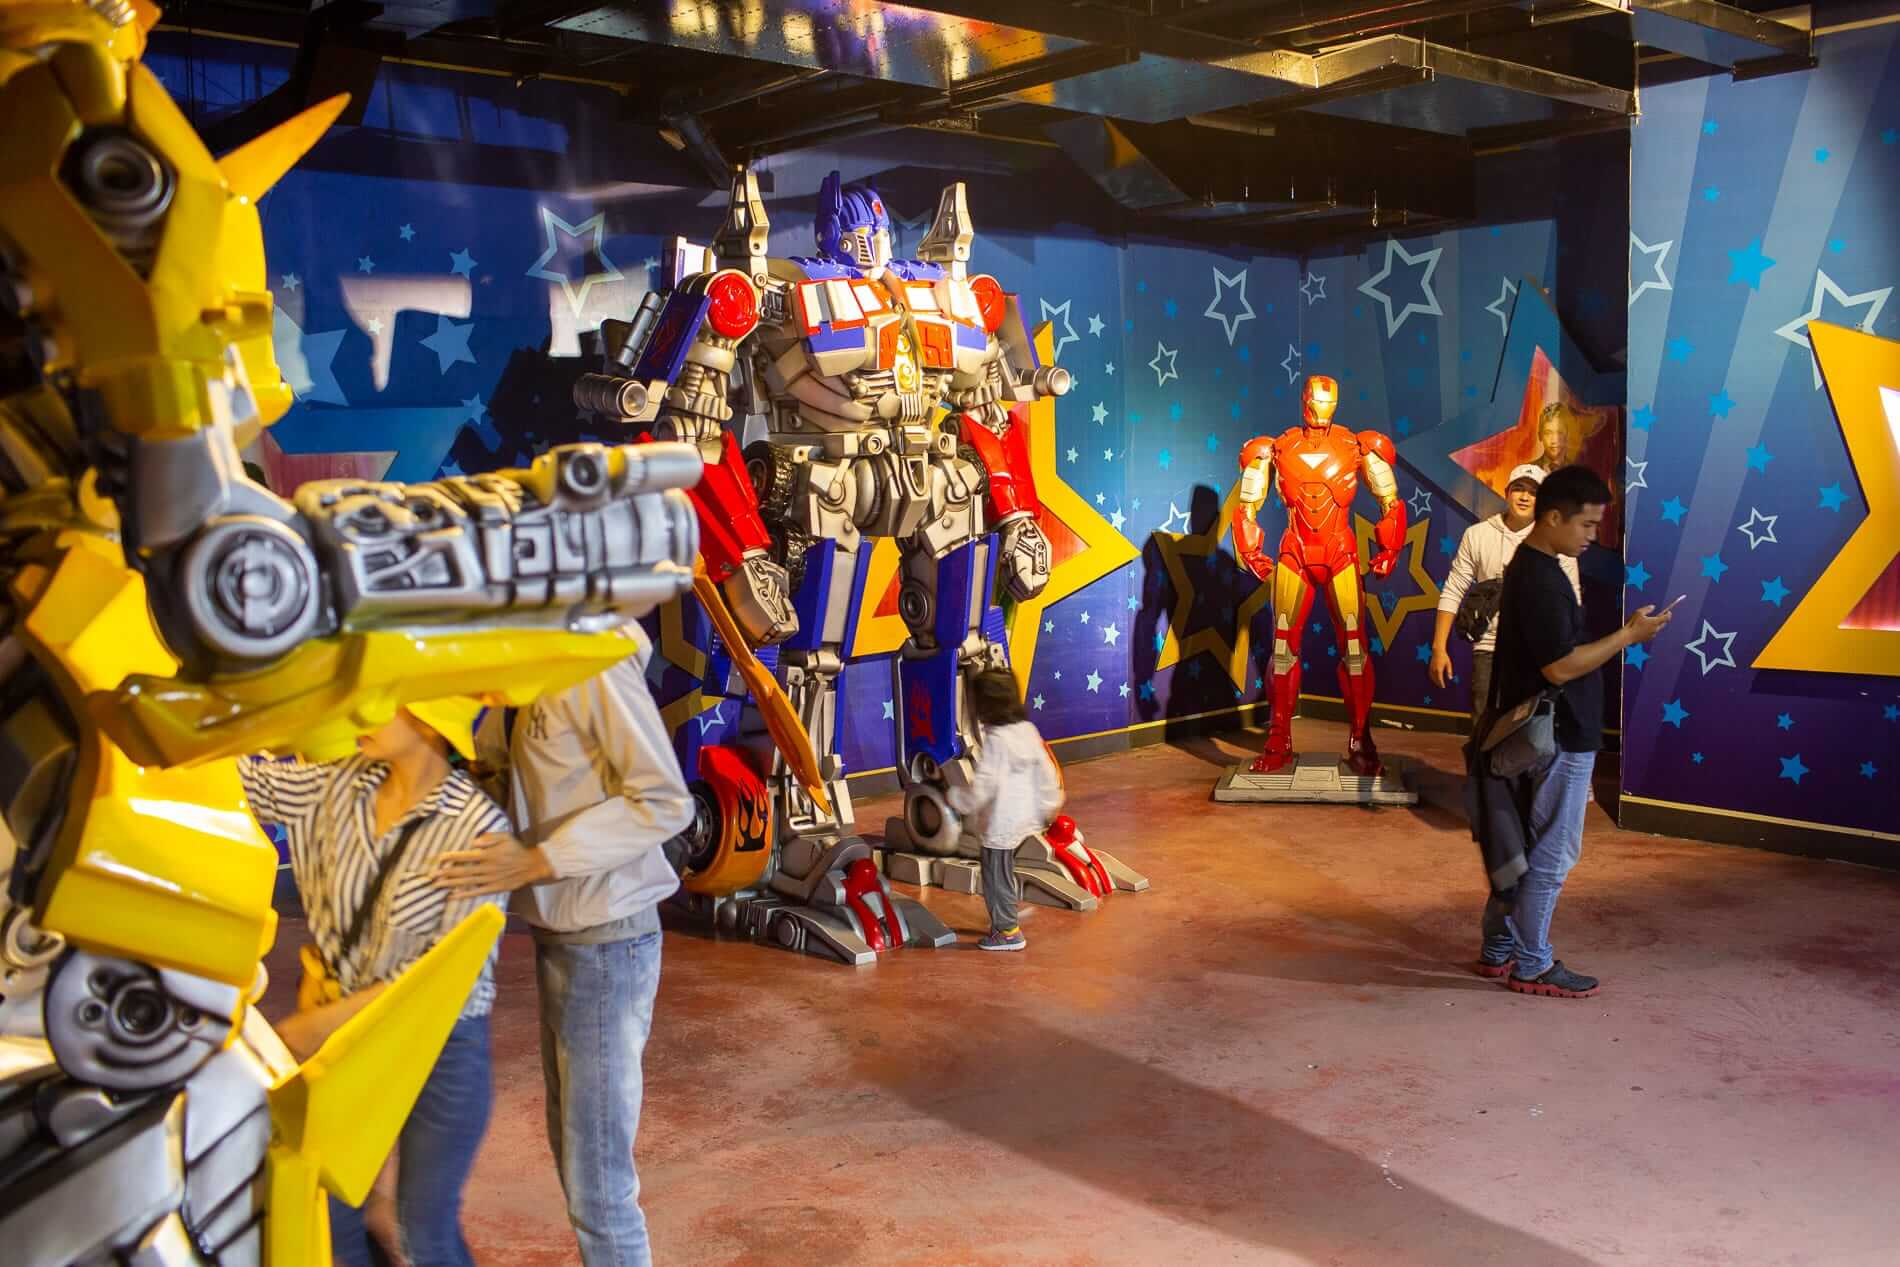 Wax museum transformers